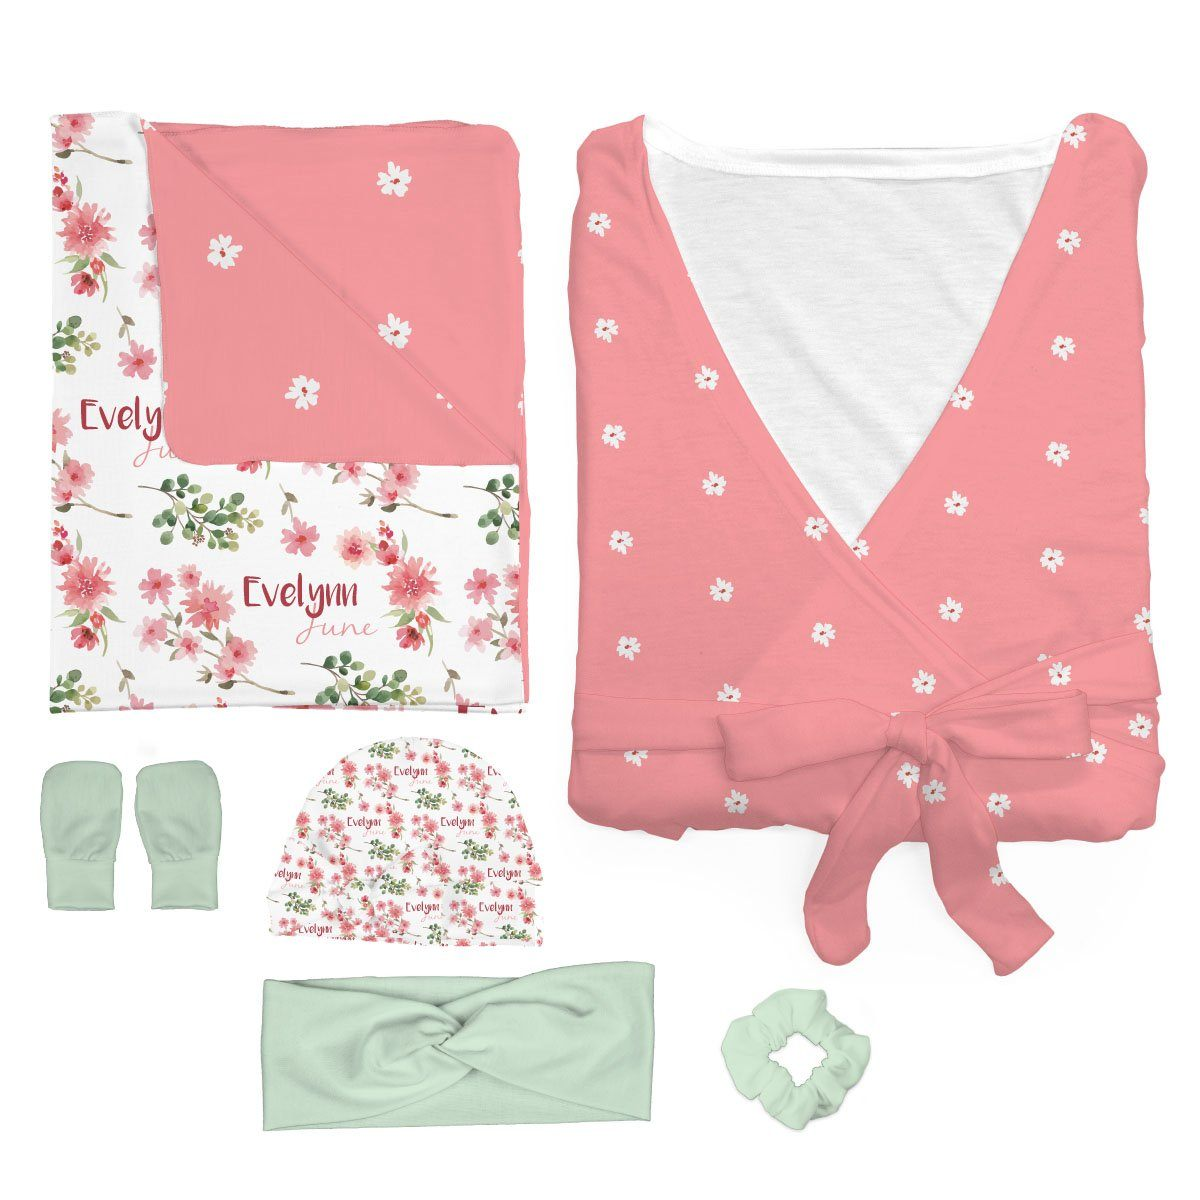 Evelynn's Spring Blossoms | Mommy & Me Bundle